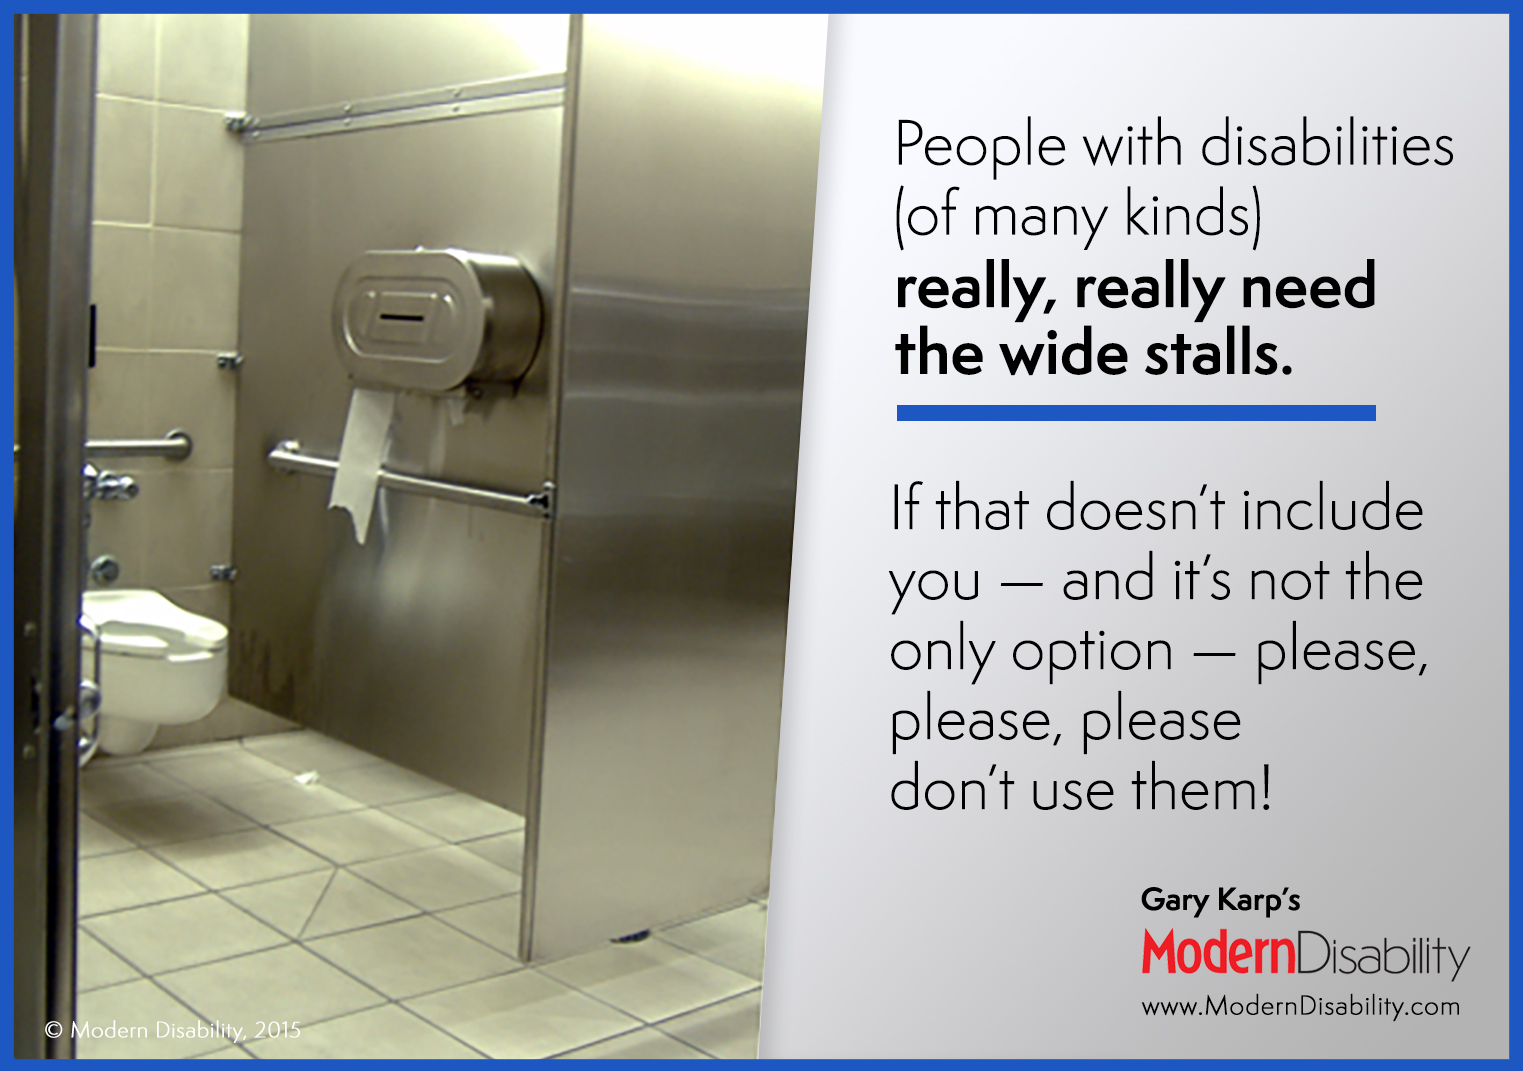 "A photo of an accessible bathroom stall and the text ""People with disabilities (of many kinds) really, really need the wide stalls. If that doesn't include you — and it's not the only option — please, please, please, don't use them!"""